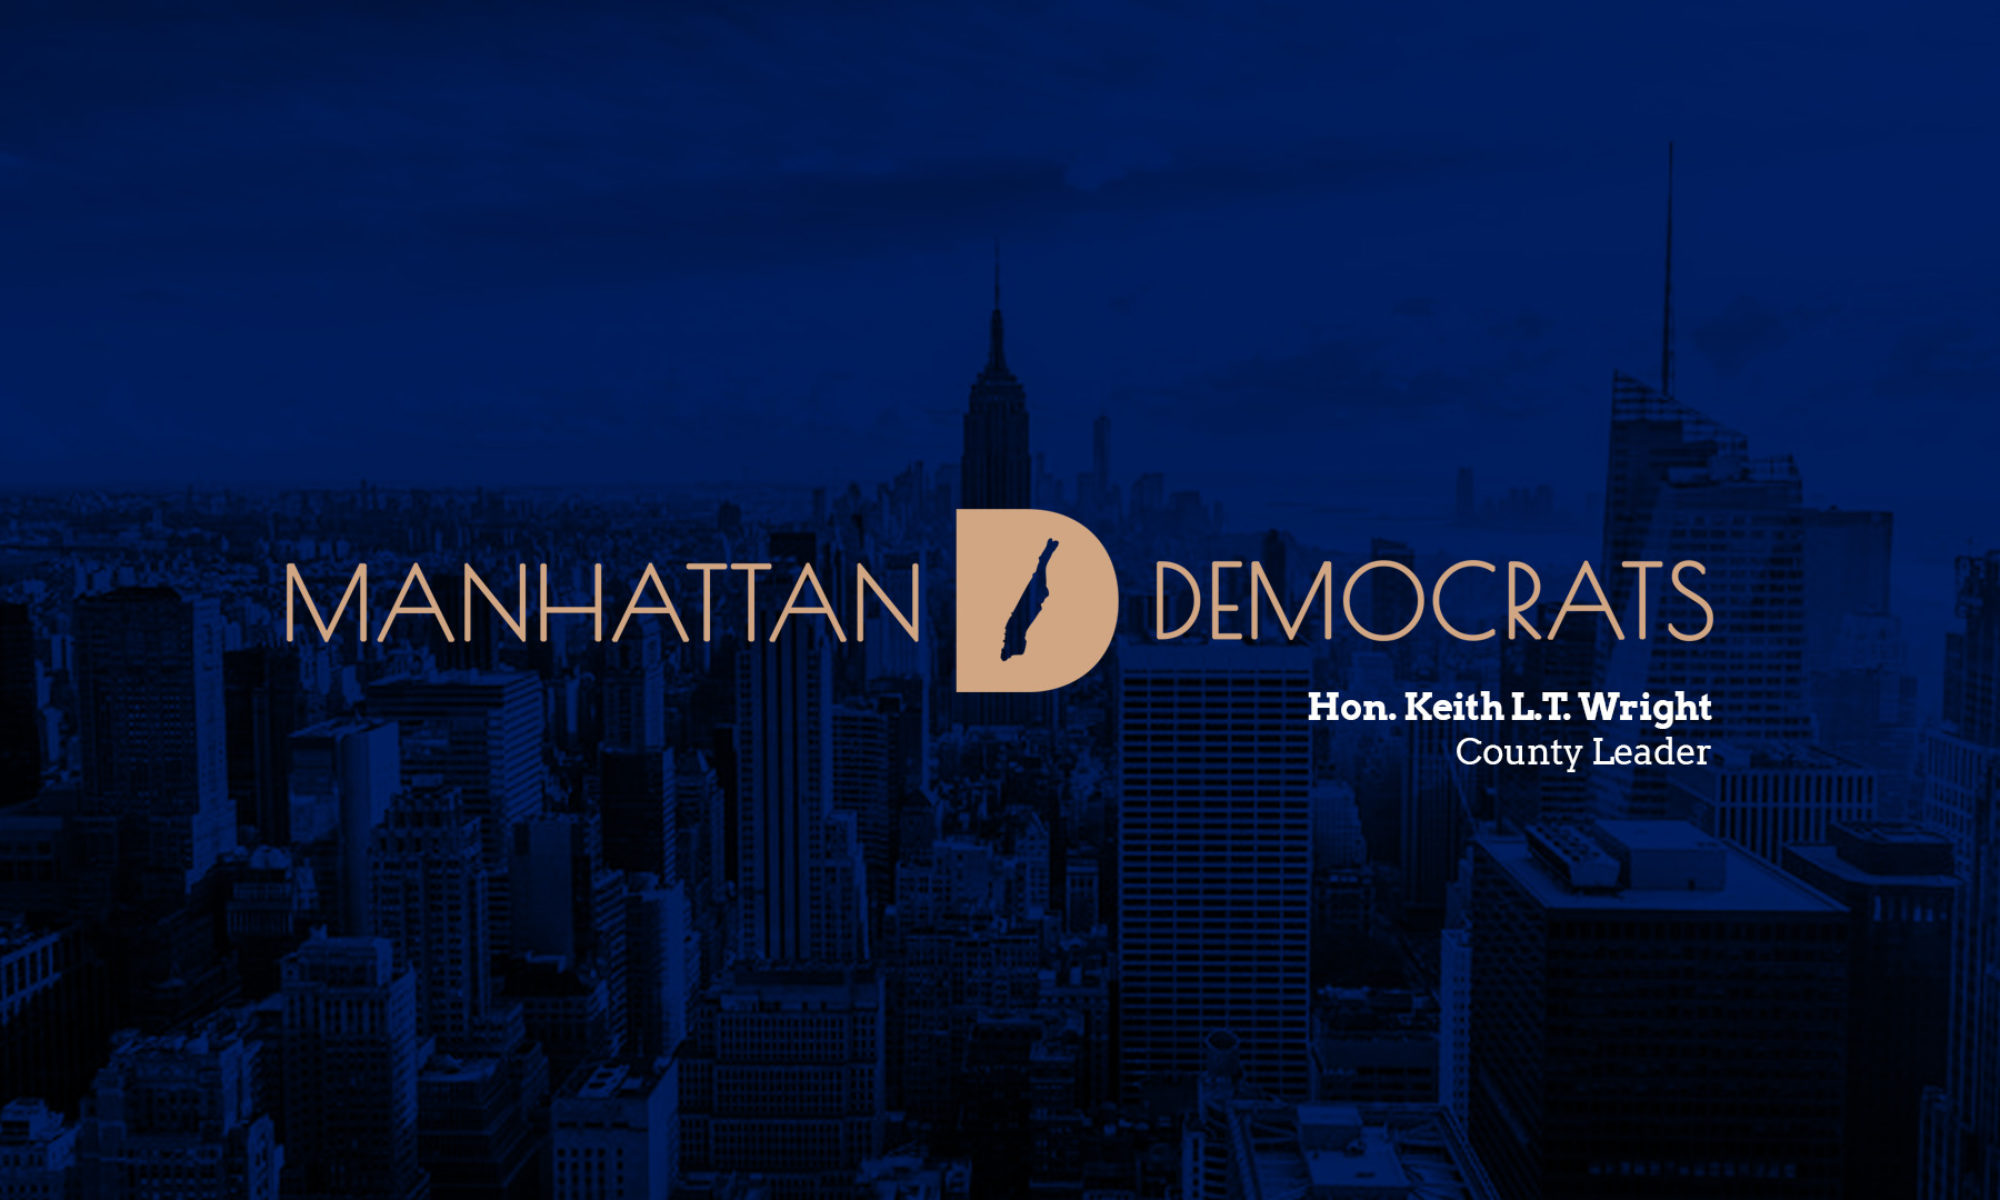 Manhattan Democratic Party